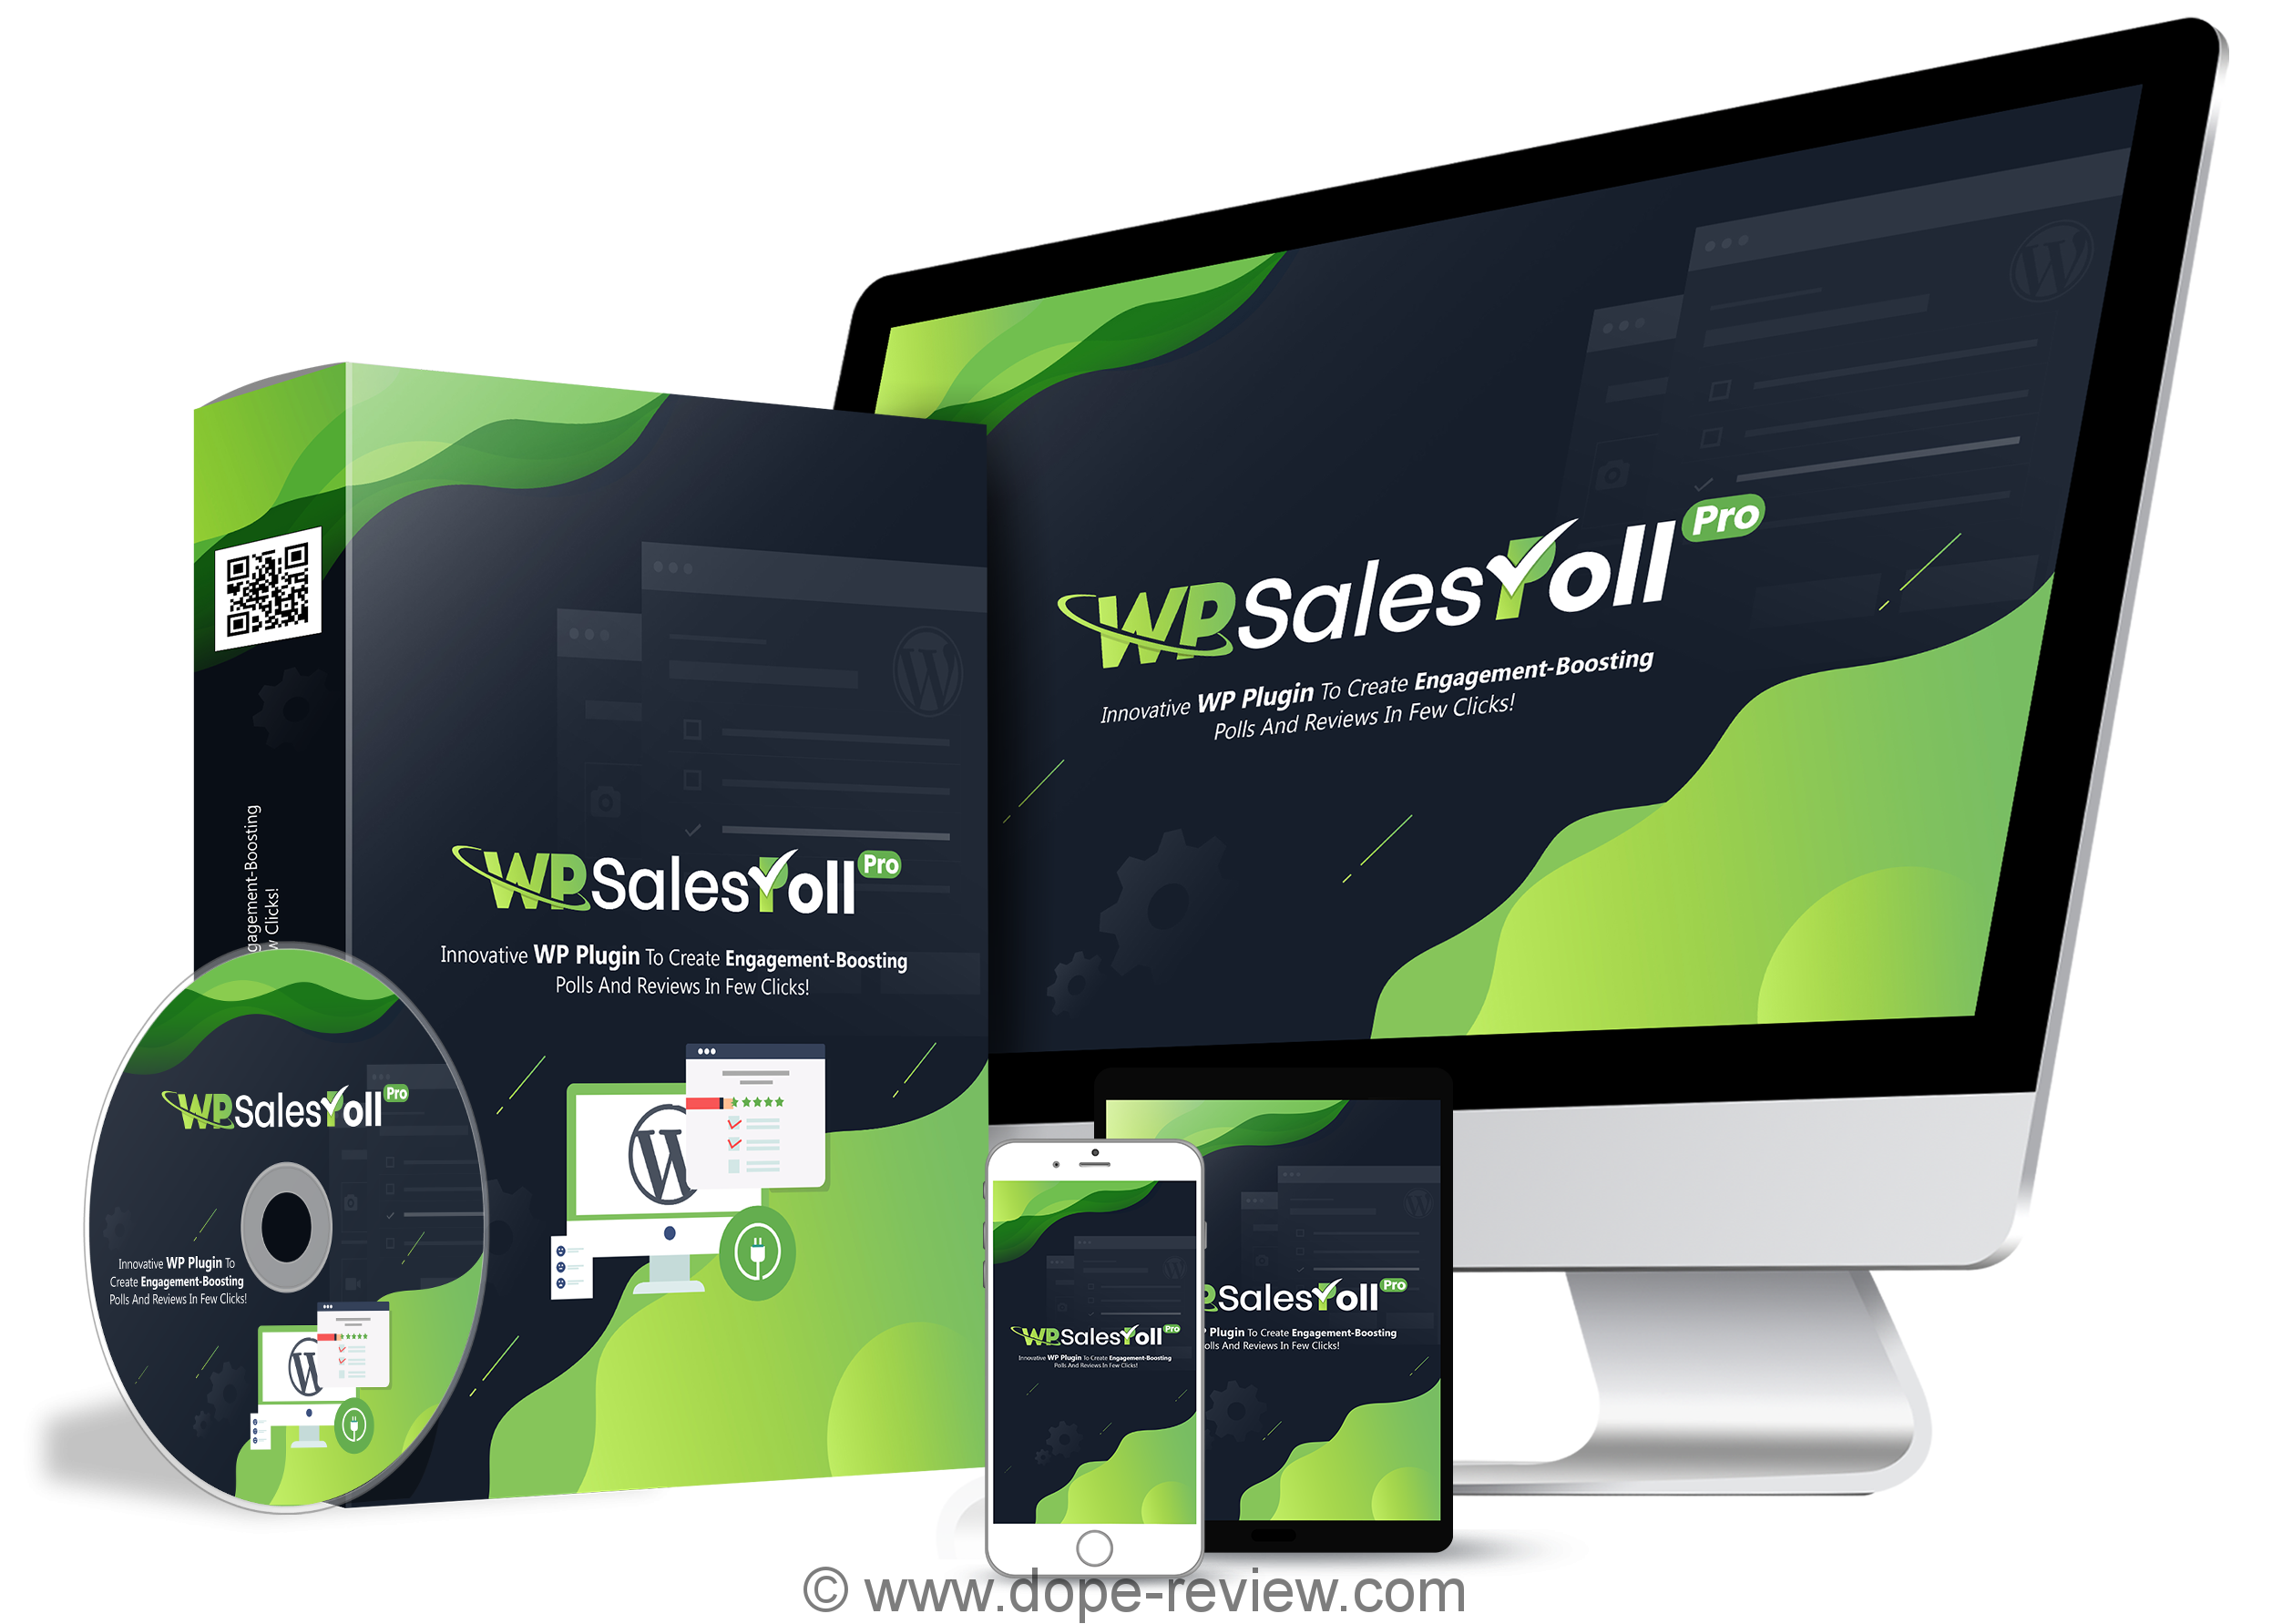 WP-SalesPollPro